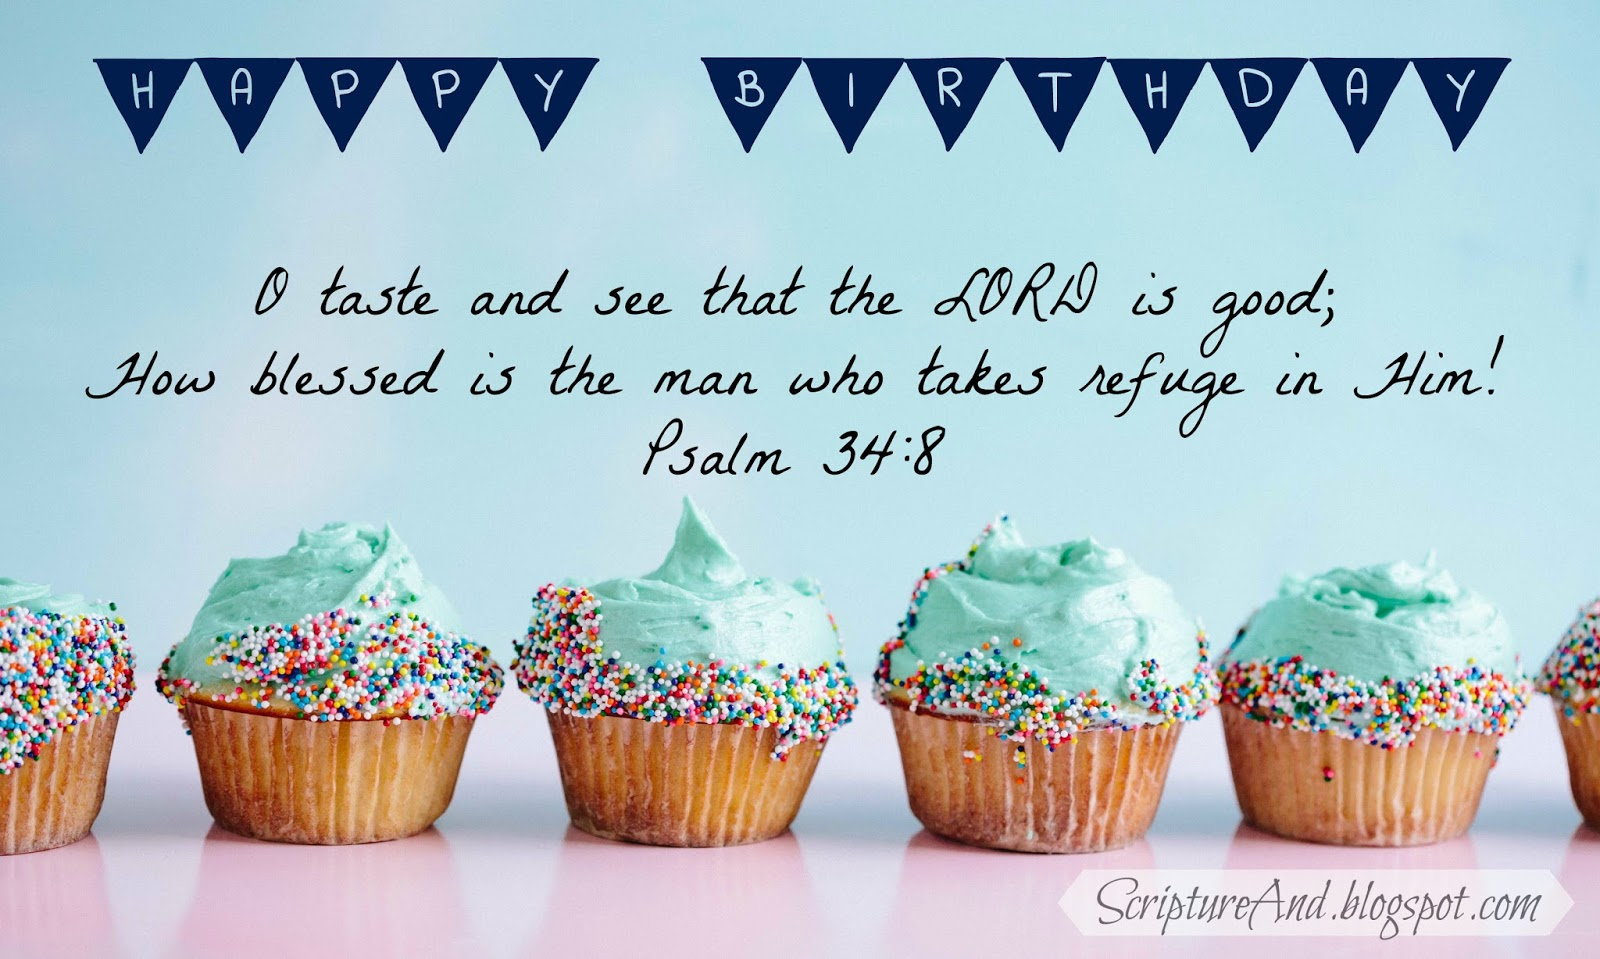 Scripture and free birthday images with bible verses happy birthday image with cupcakes and psalm 348 from scriptureandspot m4hsunfo